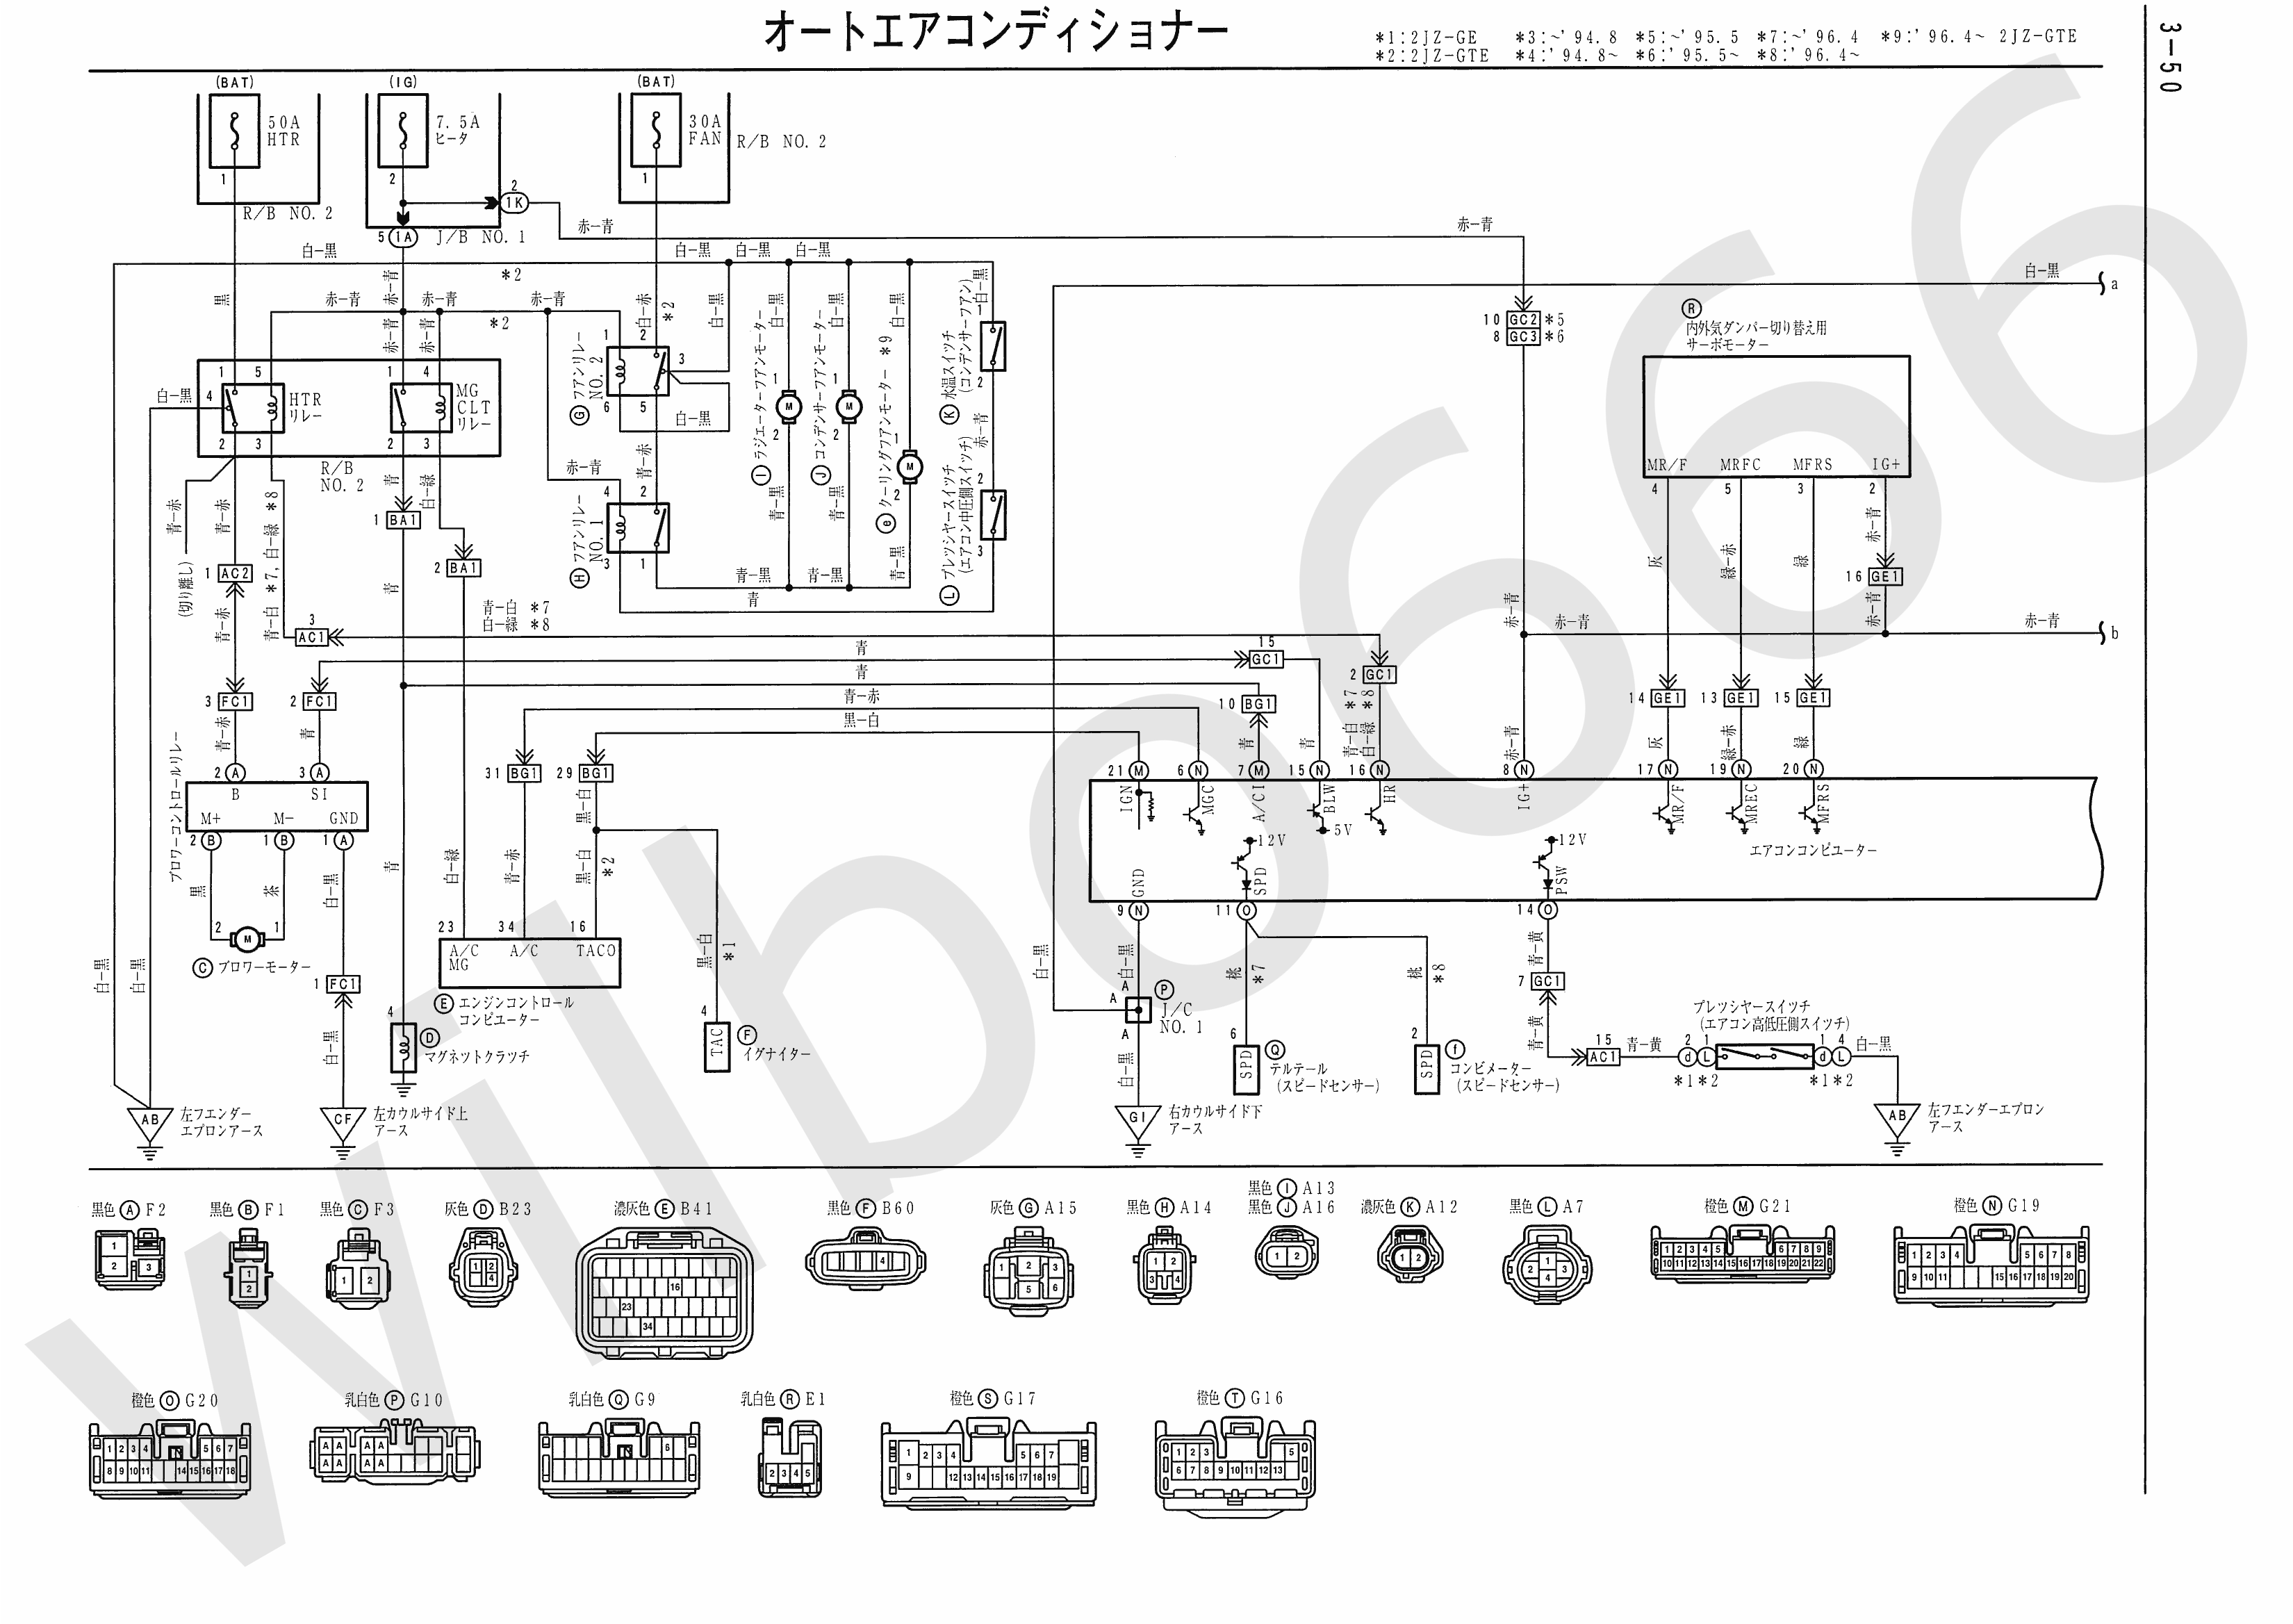 2jz wiring diagram dometic rm1350 wilbo666 gte vvti jza80 supra engine